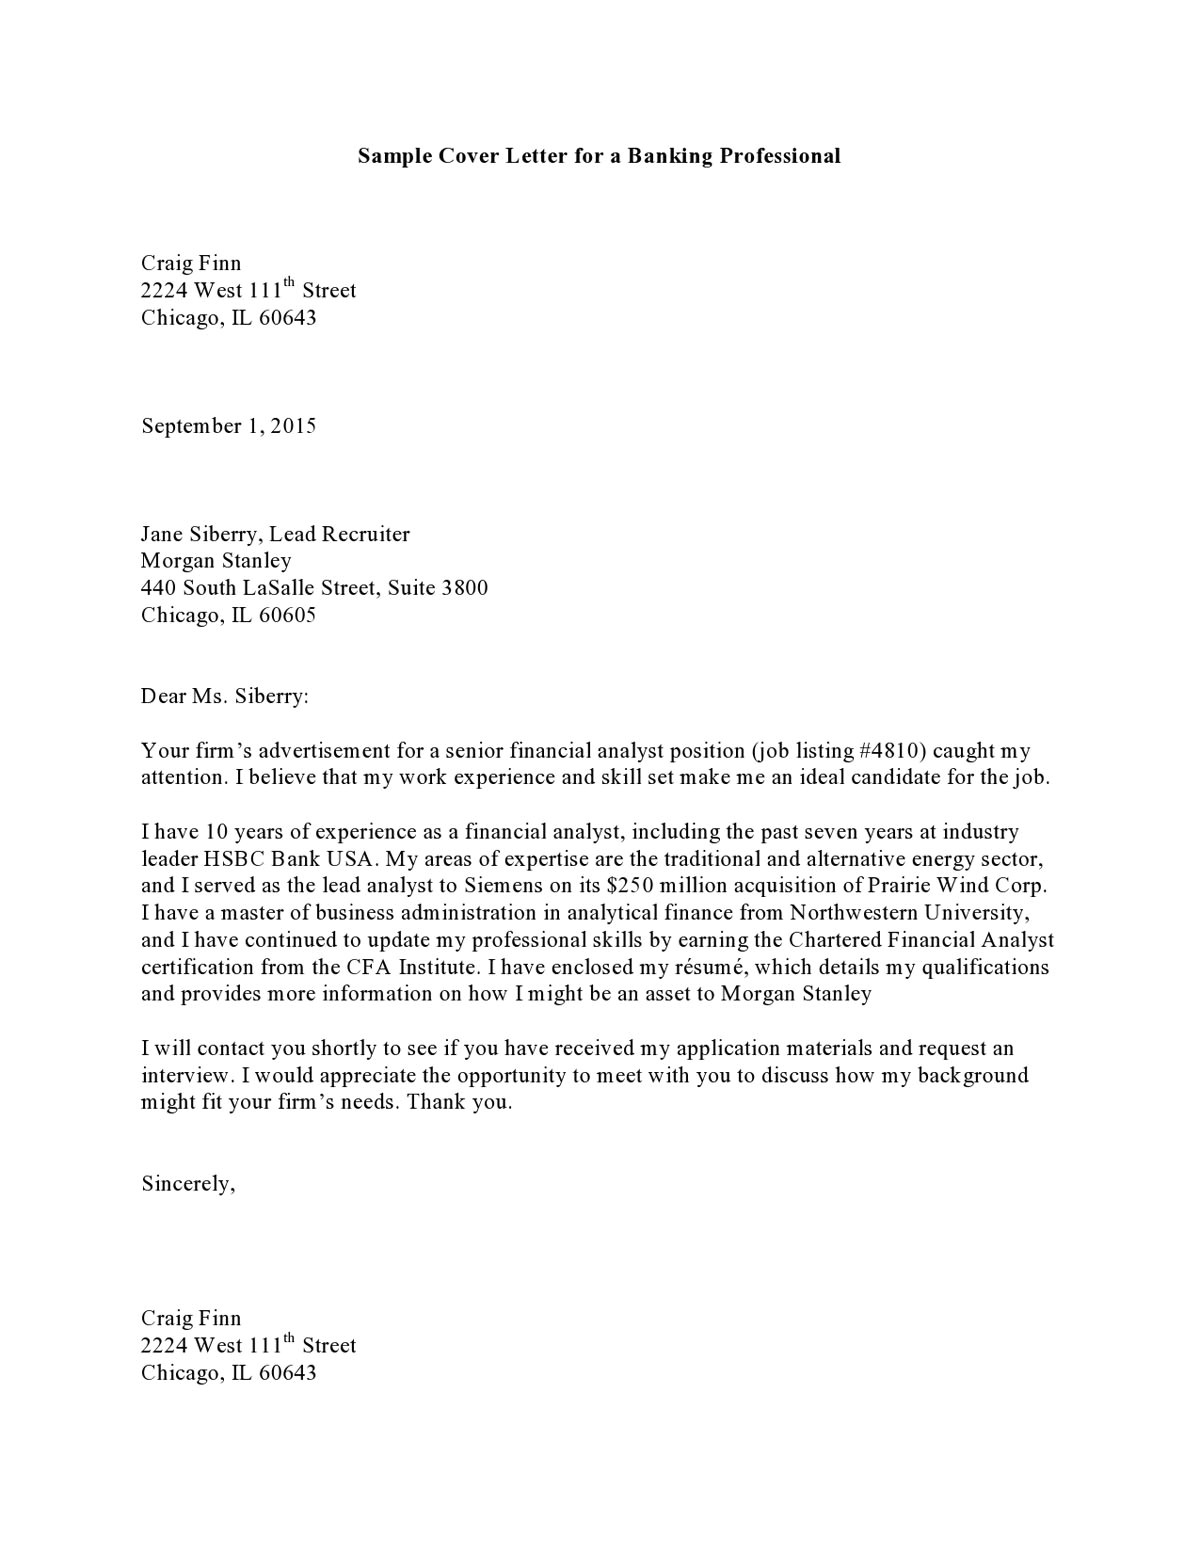 What Os A Cover Letter Download Cover Letter Professional Sample Pdf Templates